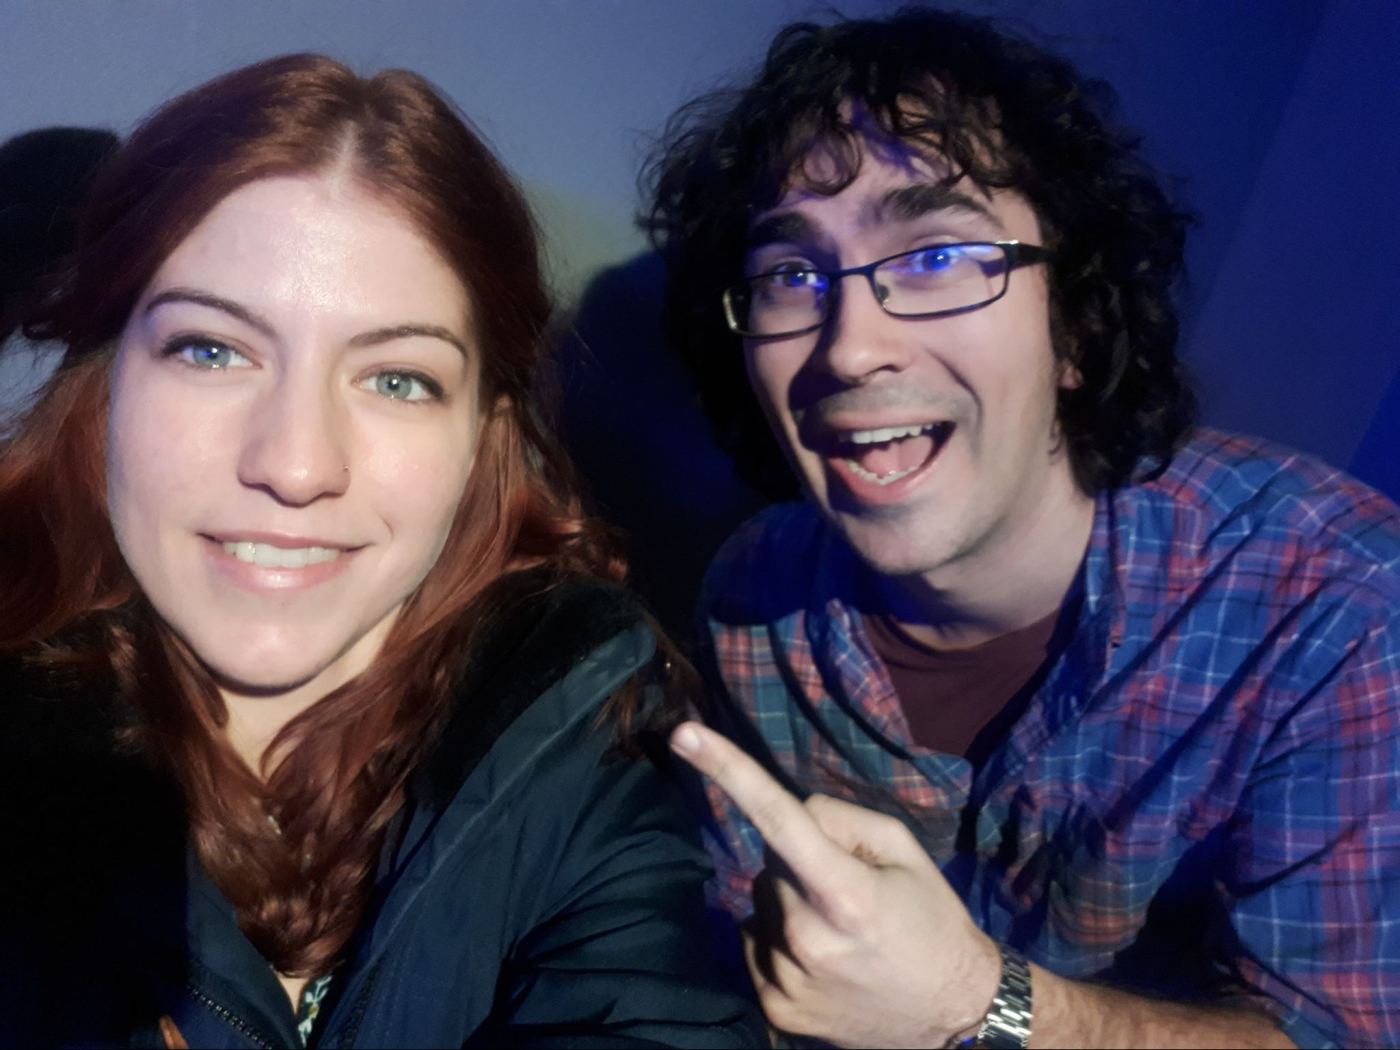 Marianna and Marc Hallworth from Vest of Friends Podcast (Toronto)